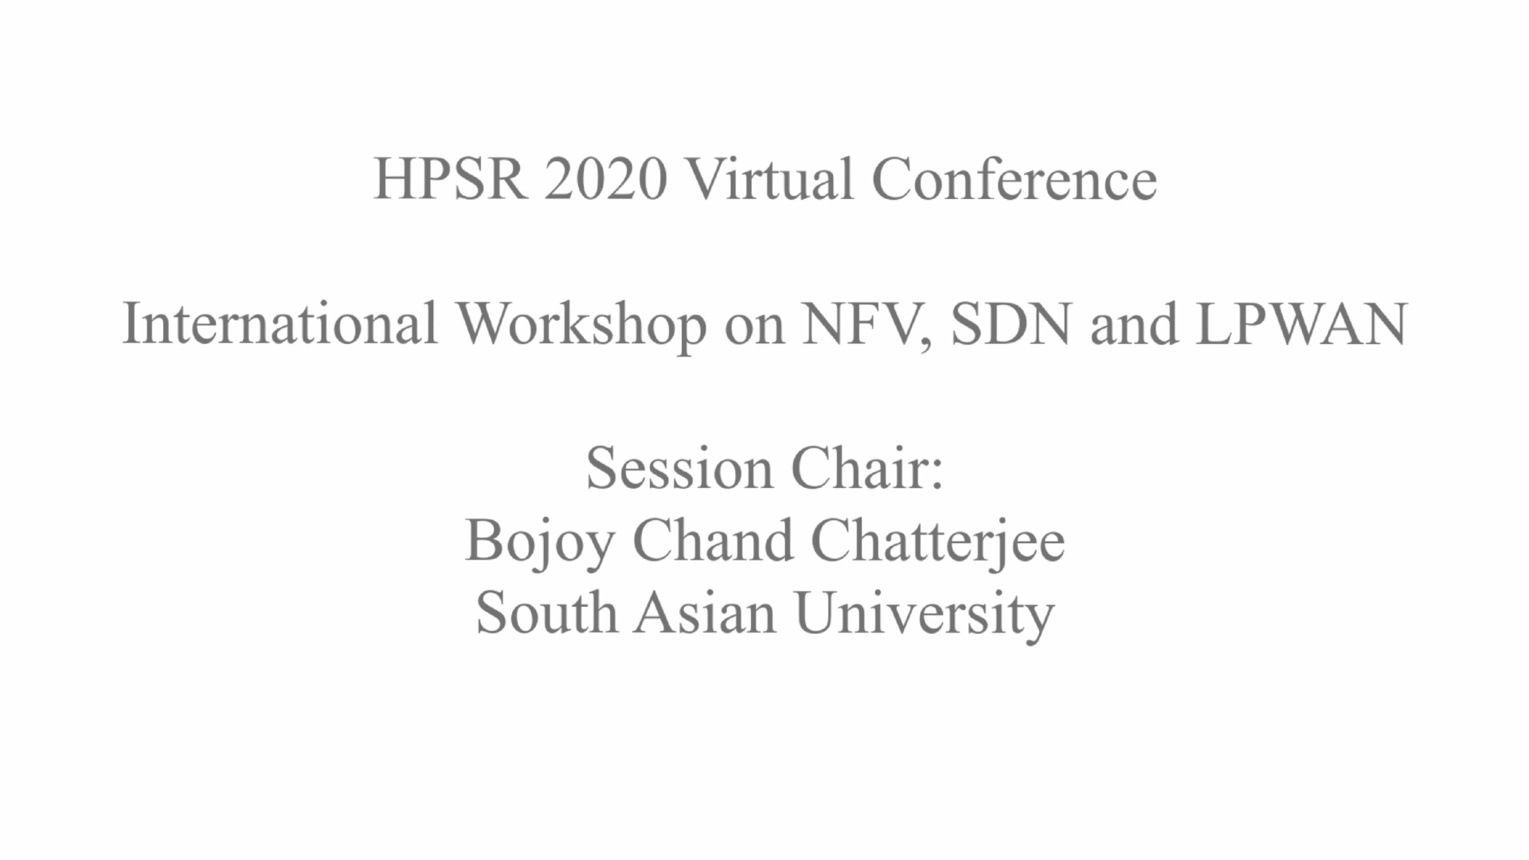 International Workshop on NFV, SDN, & LPWAN: HPSR 2020 Virtual Conference